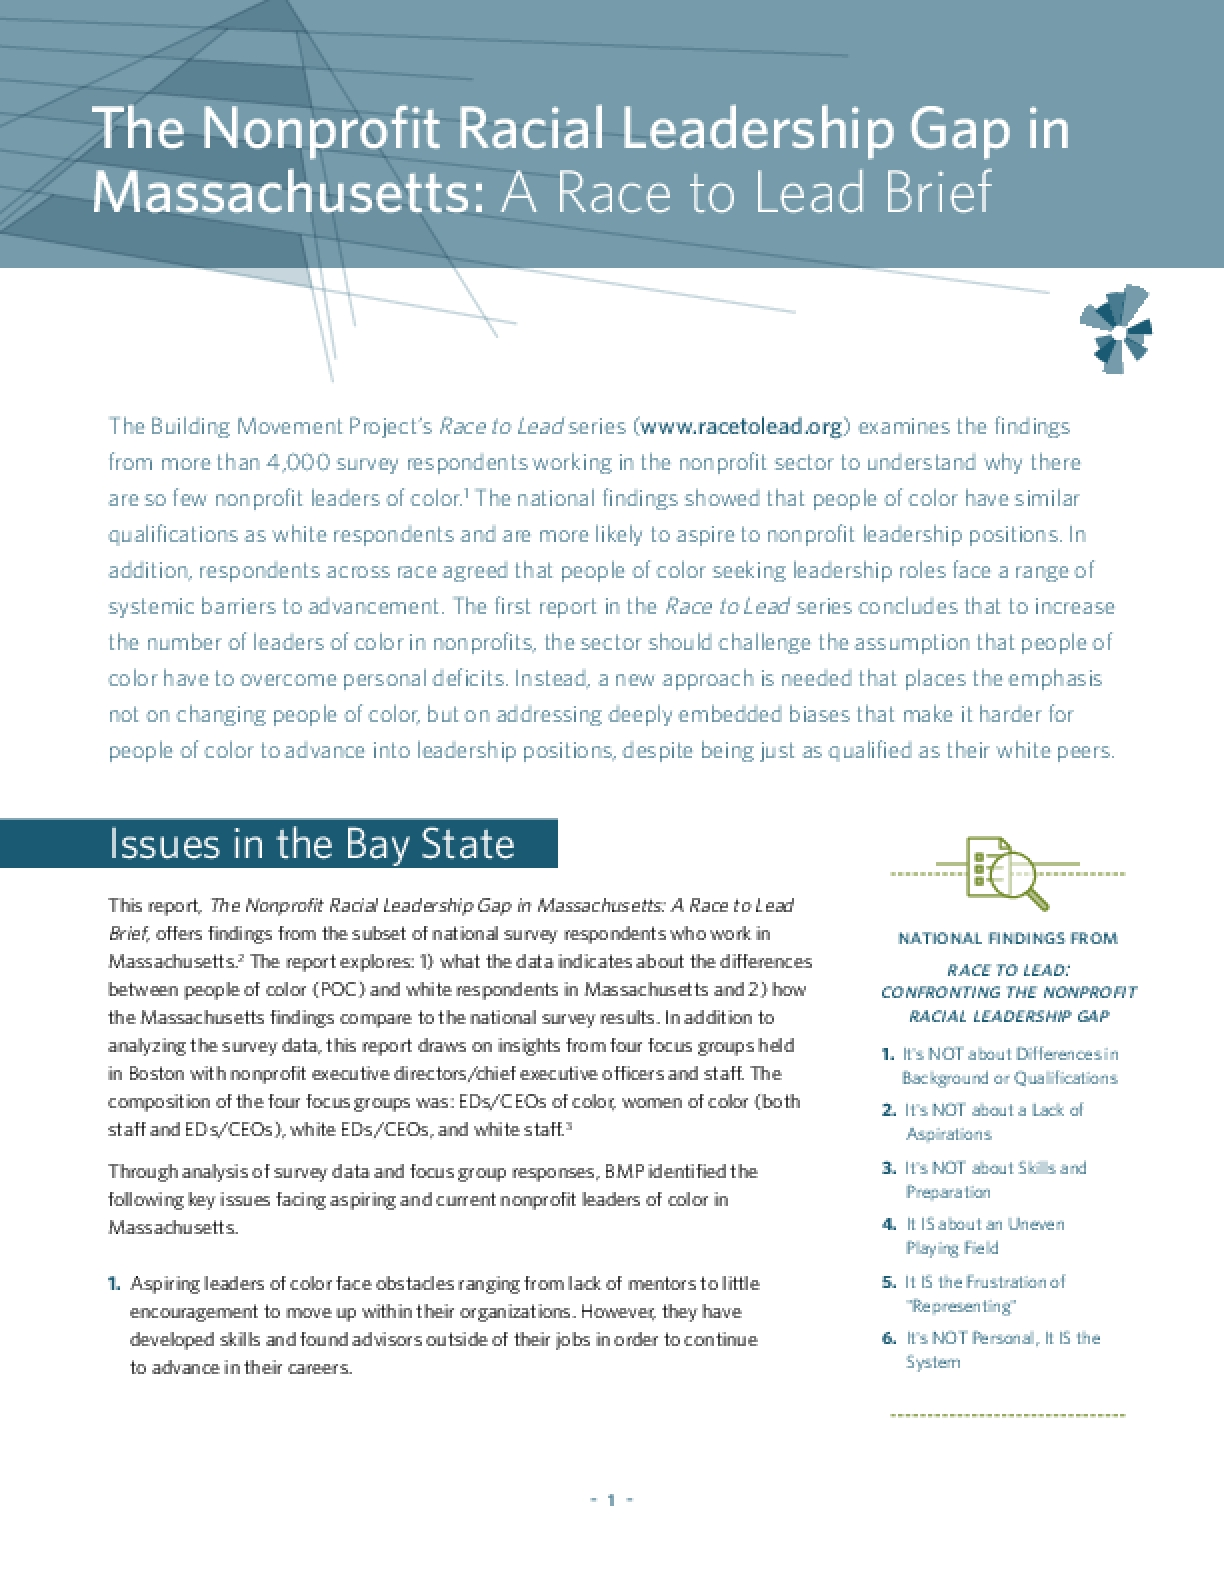 The Nonprofit Racial Leadership Gap in Massachusetts: A Race to Lead Brief